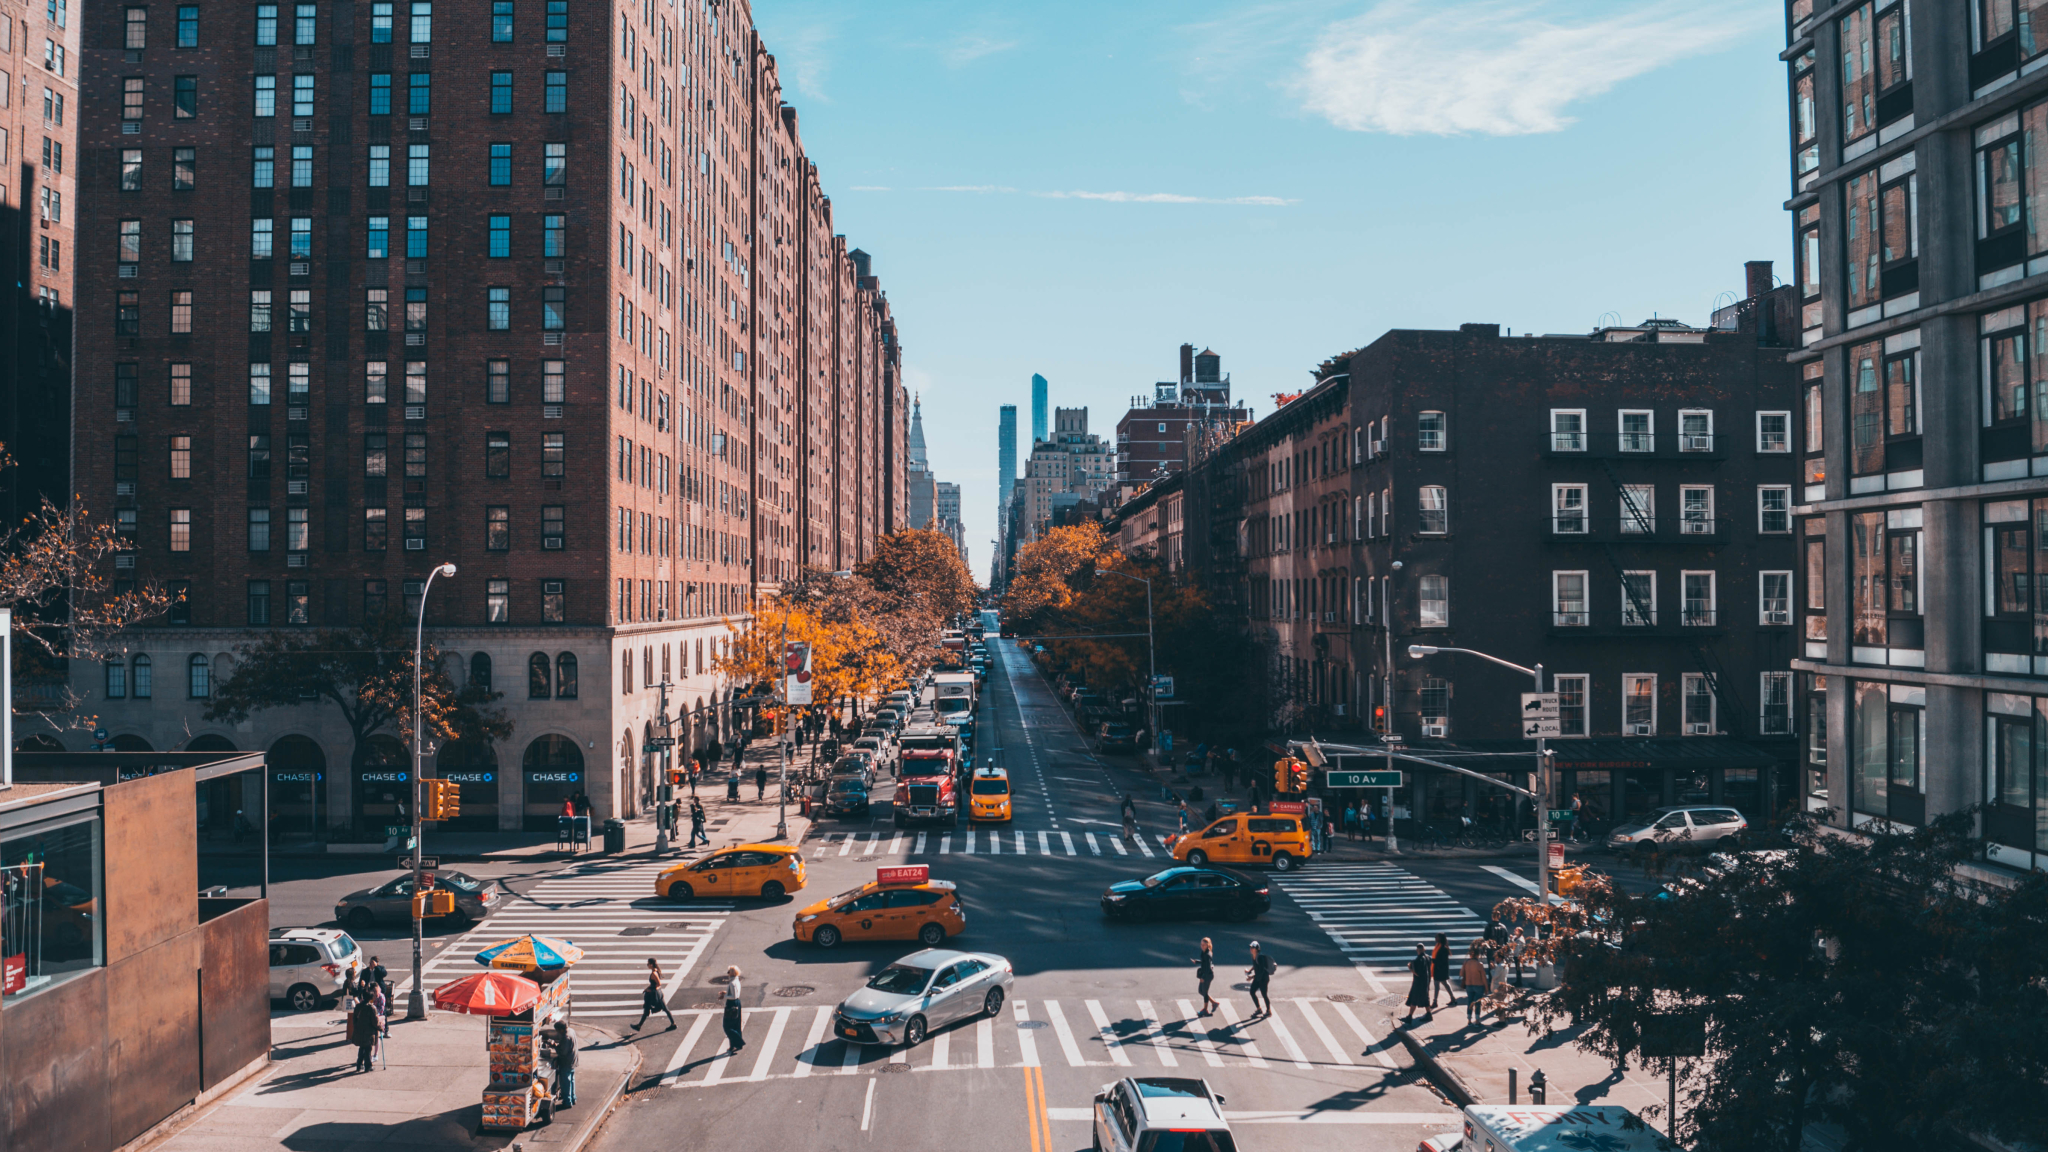 Download New York City Street Photography 1366x768 ... City Street Photography